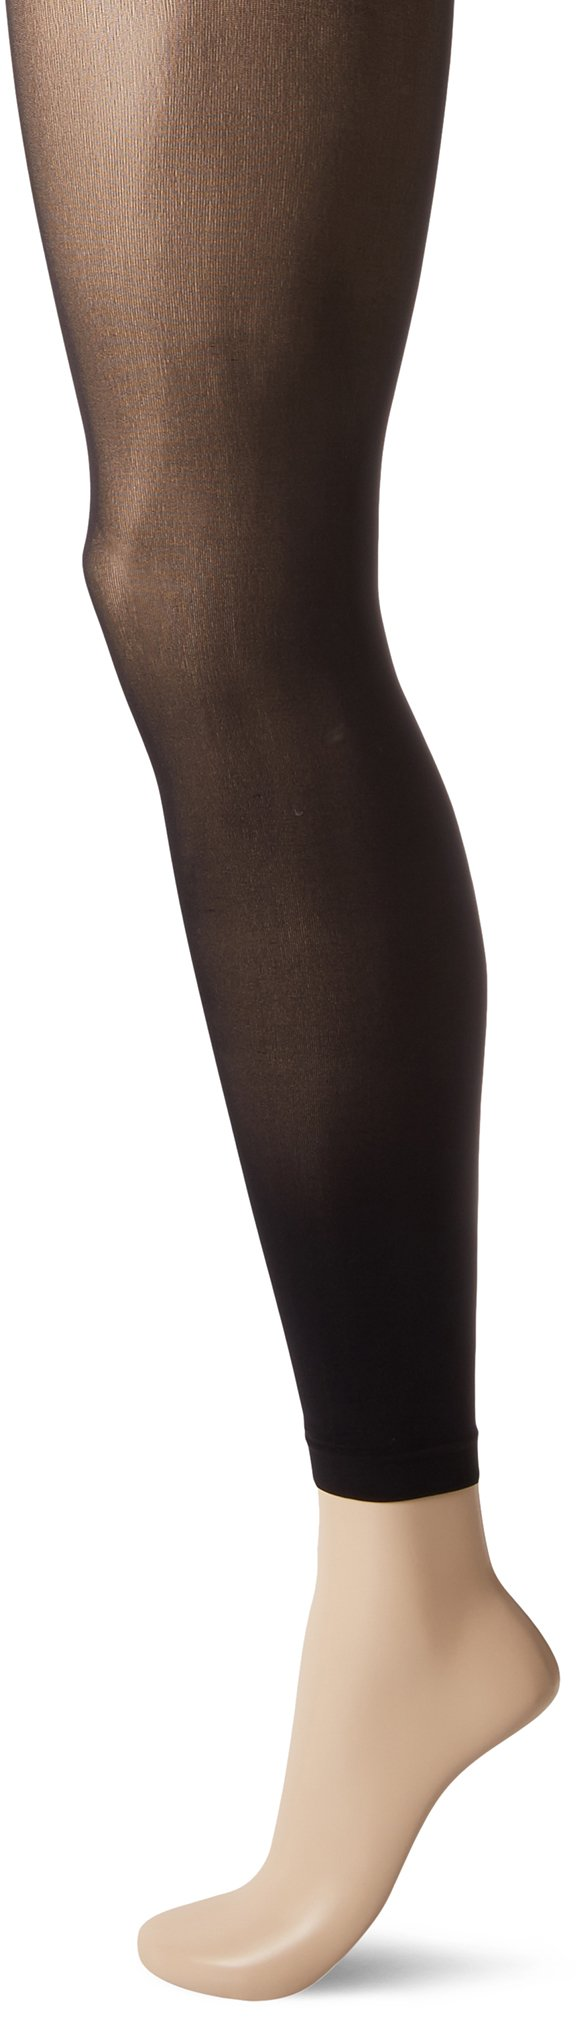 HUE Women's Flat-Tering Fit Opaque Footless Tights, Black, 1